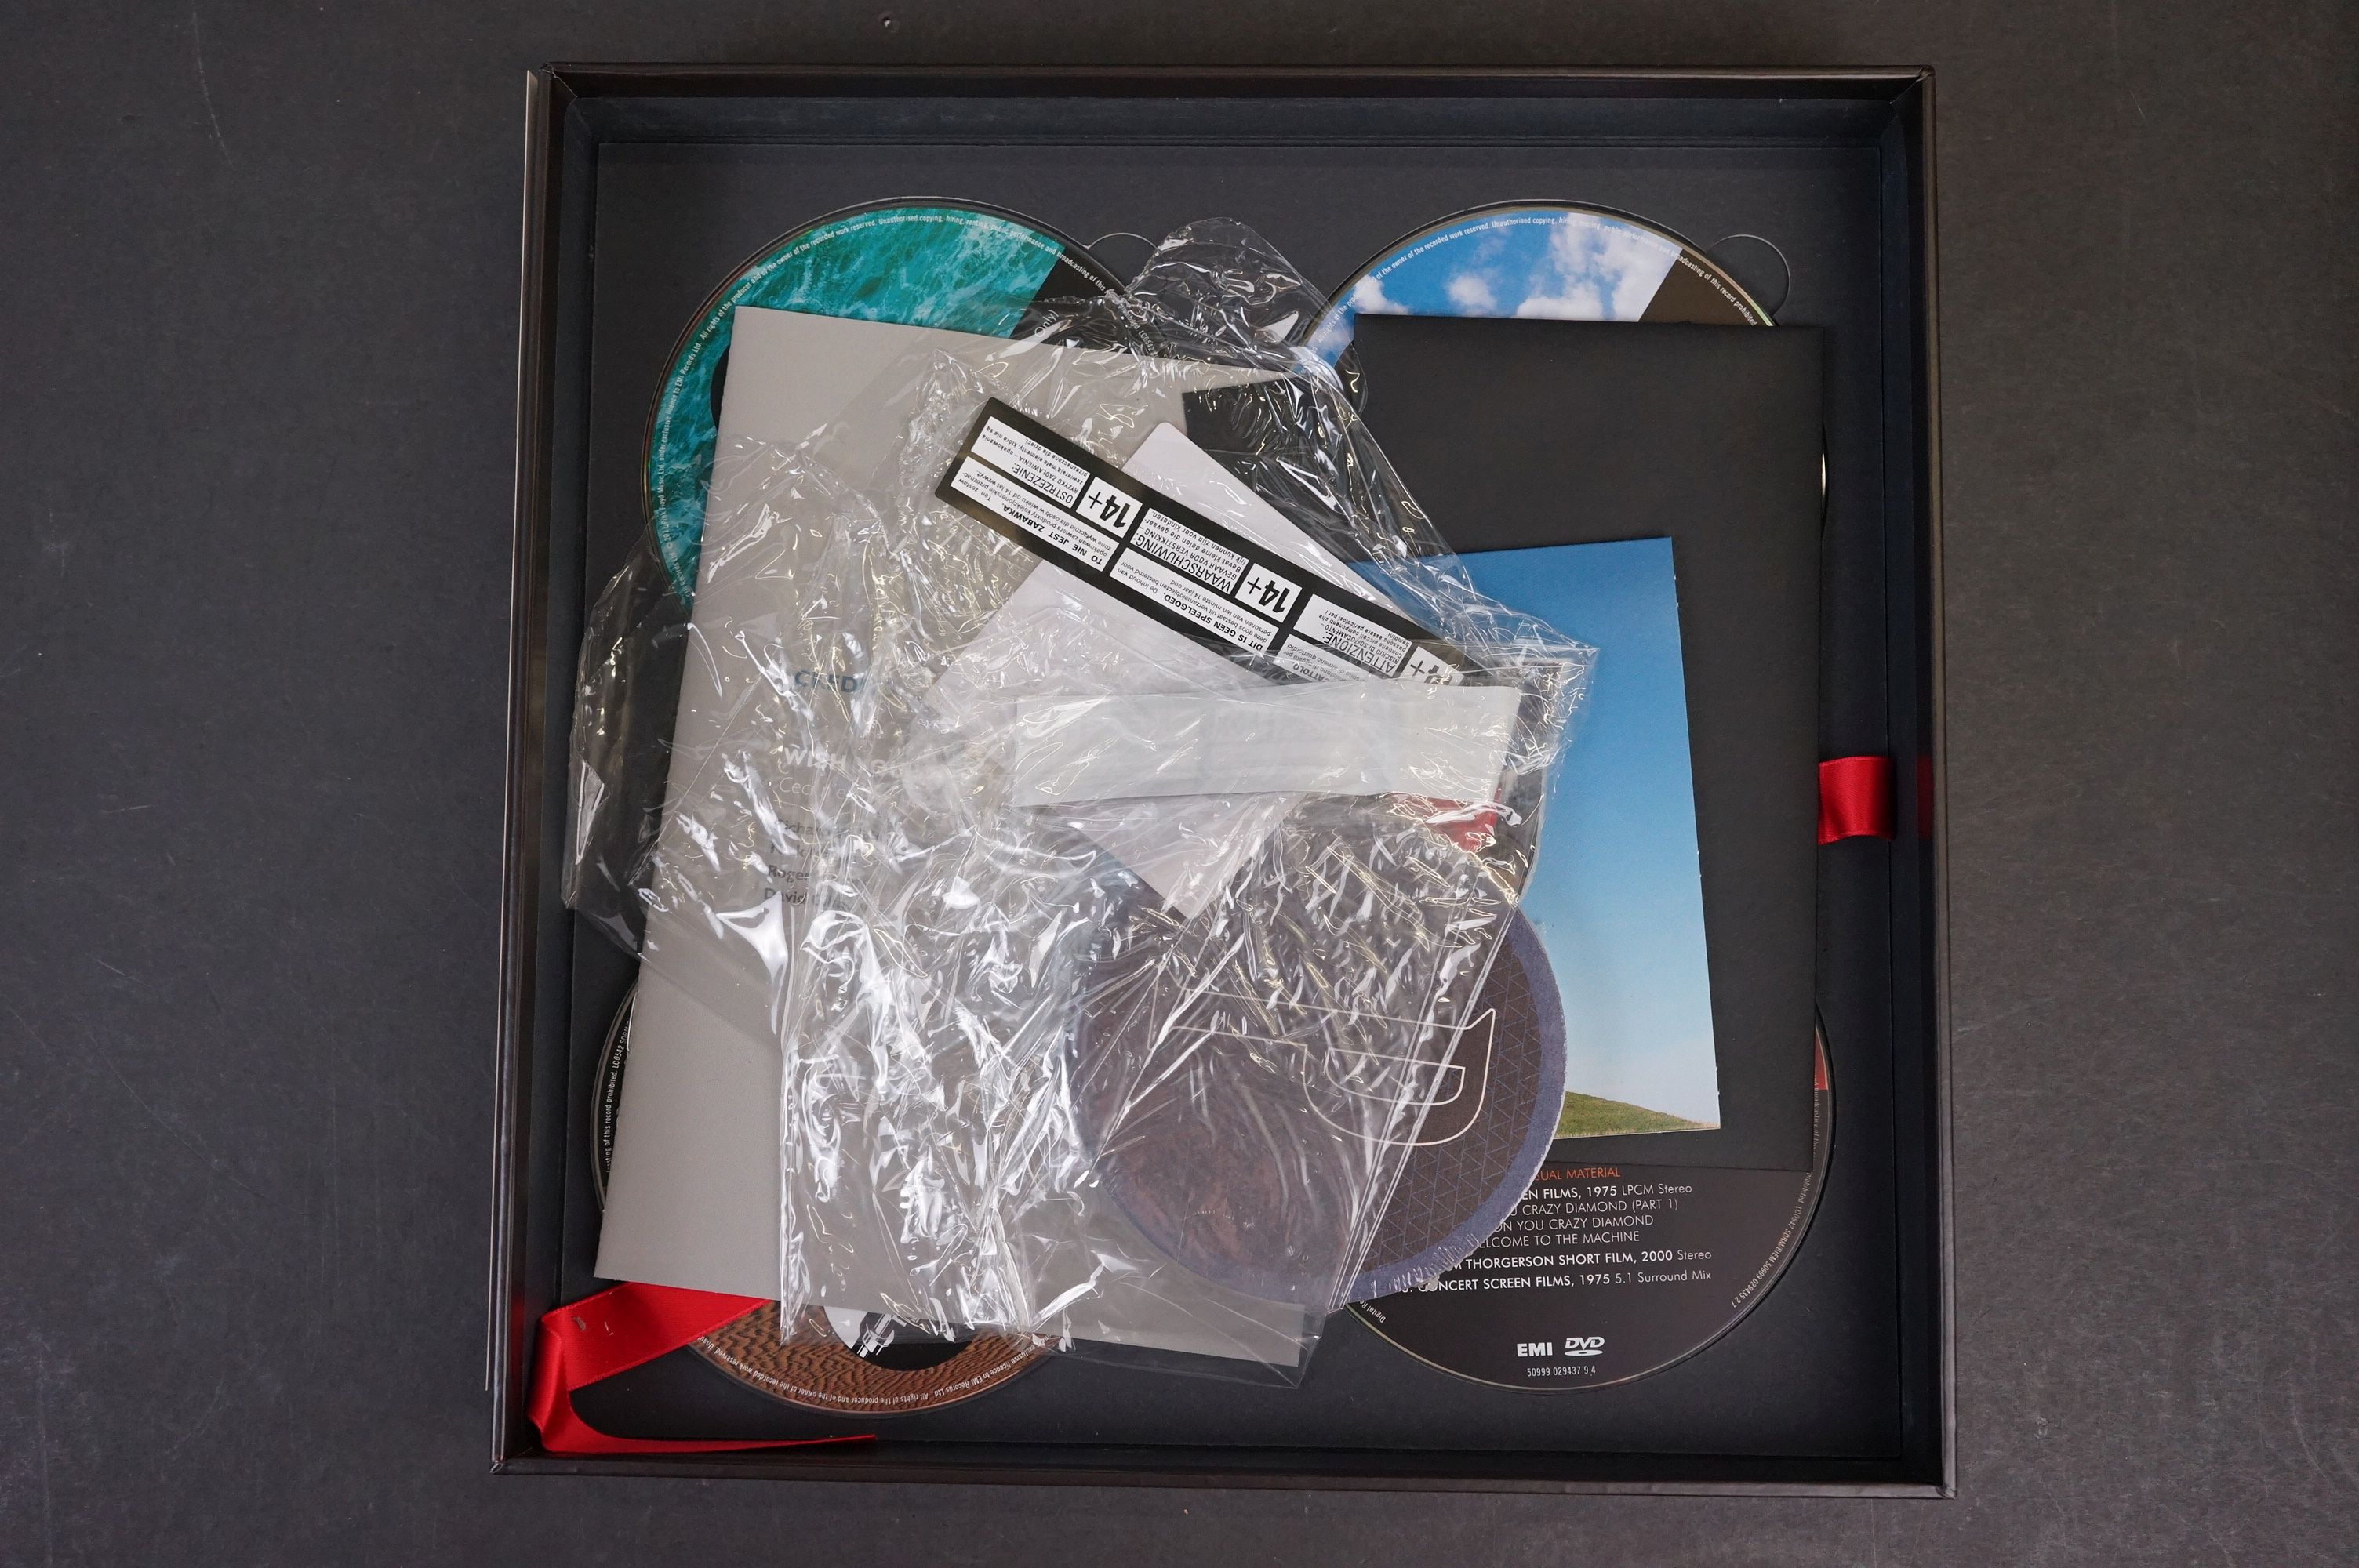 CD / DVD / Bluray - Pink Floyd Wish You Were Here 5 disc box set ex - Image 7 of 13